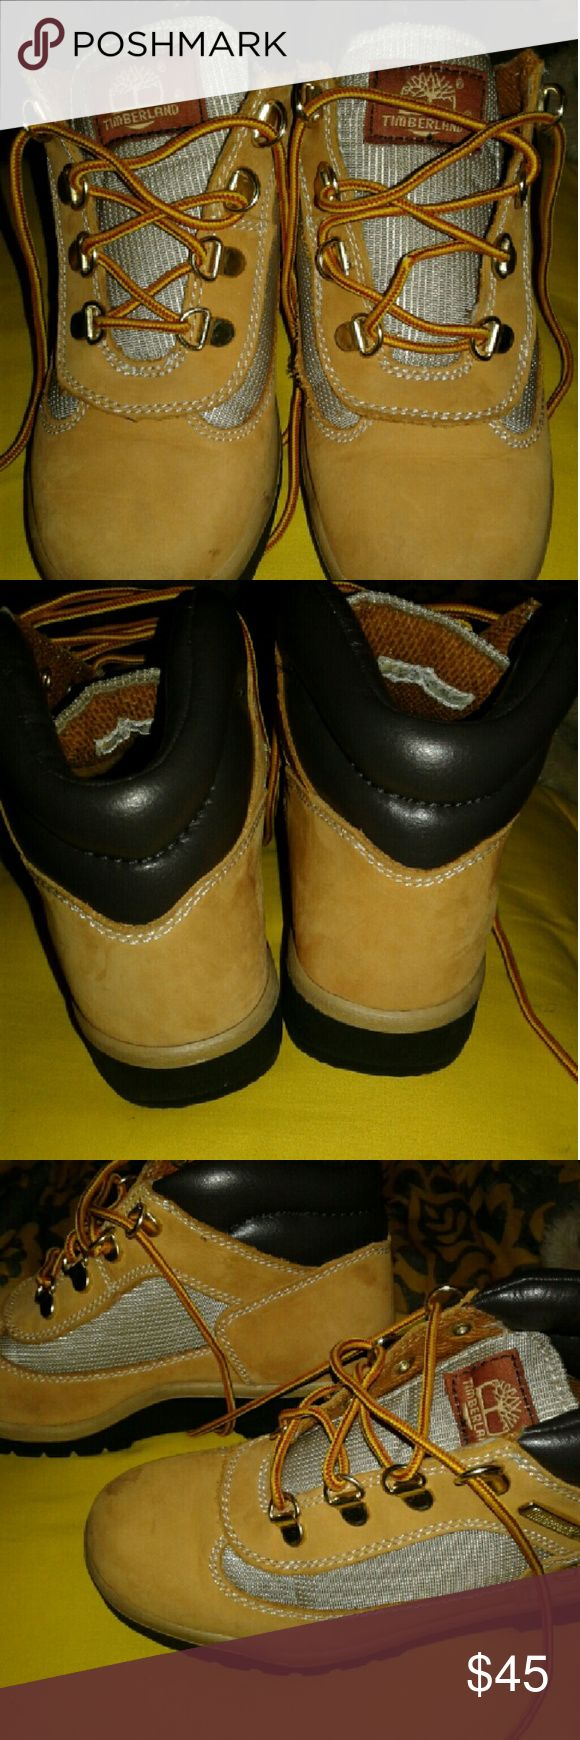 Boys timberland boots Boys field boots in exc. Condition. Timberland Shoes Boots